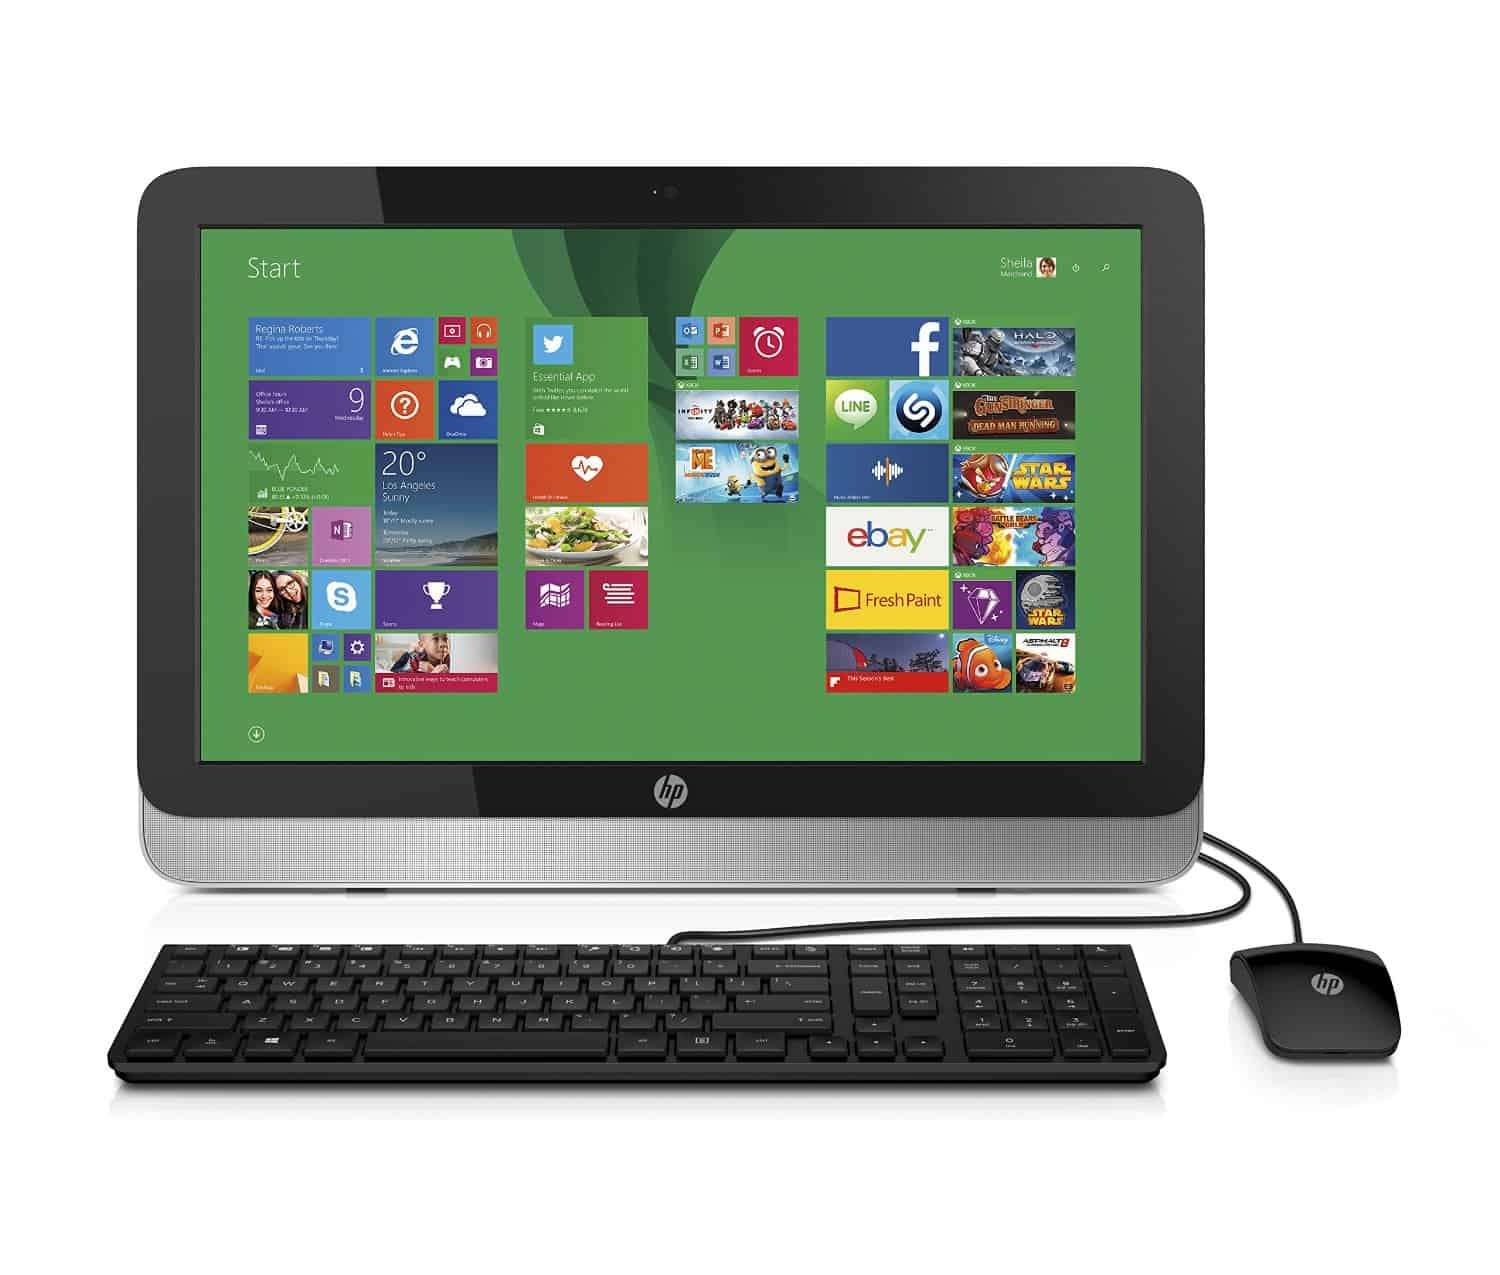 HP 22-3010 All-in-one